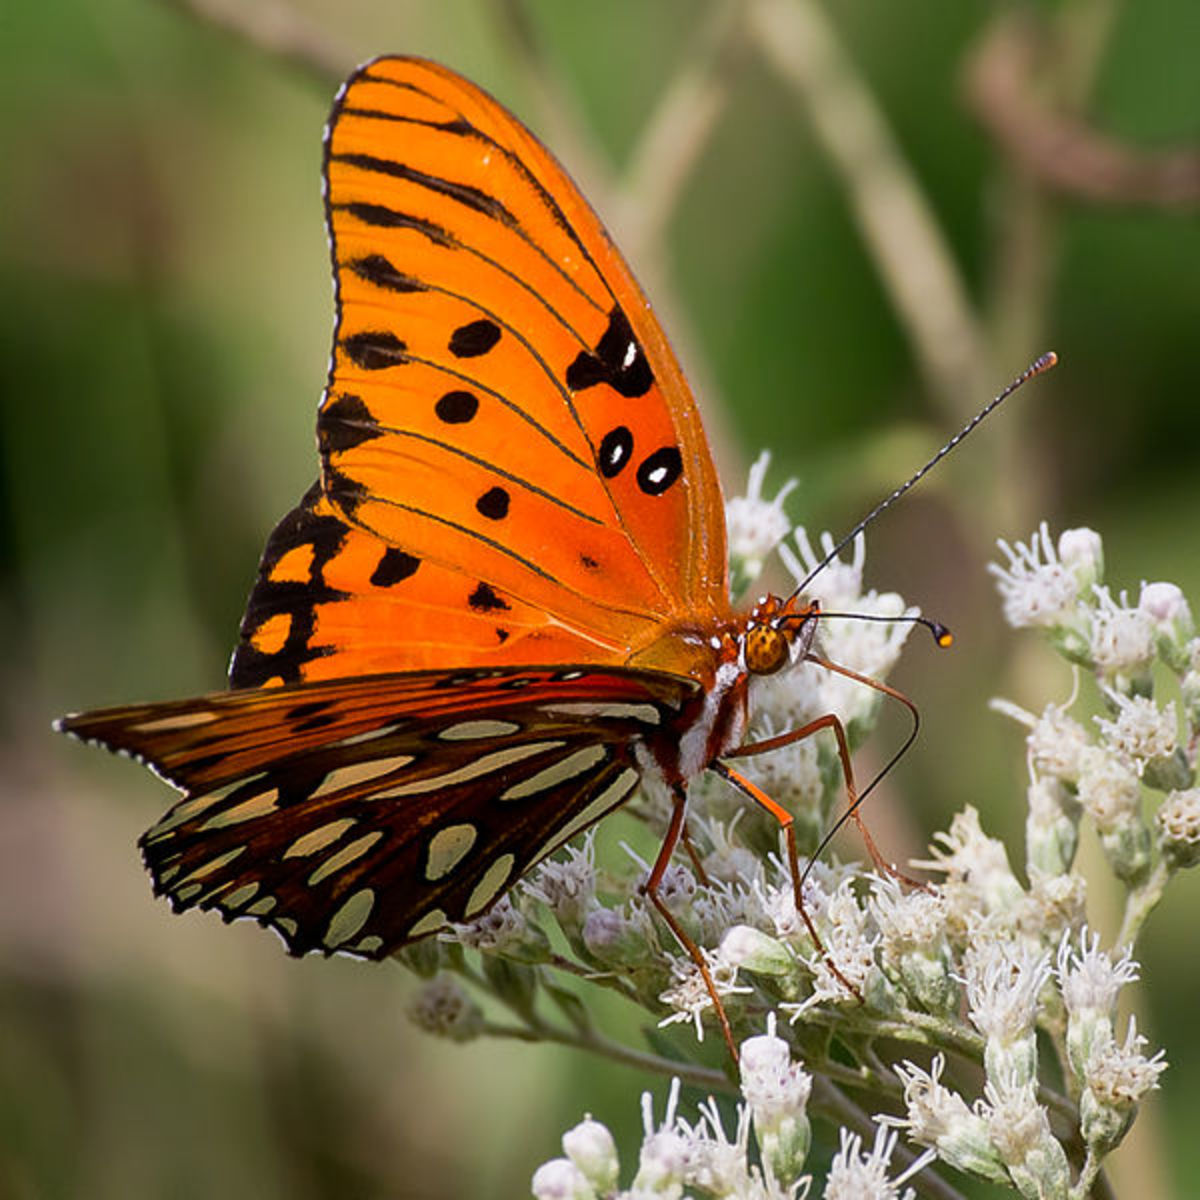 Orange Gulf Fritillary Butterfly on white flowers.  Sometimes referred to as a Passion Butterfly.